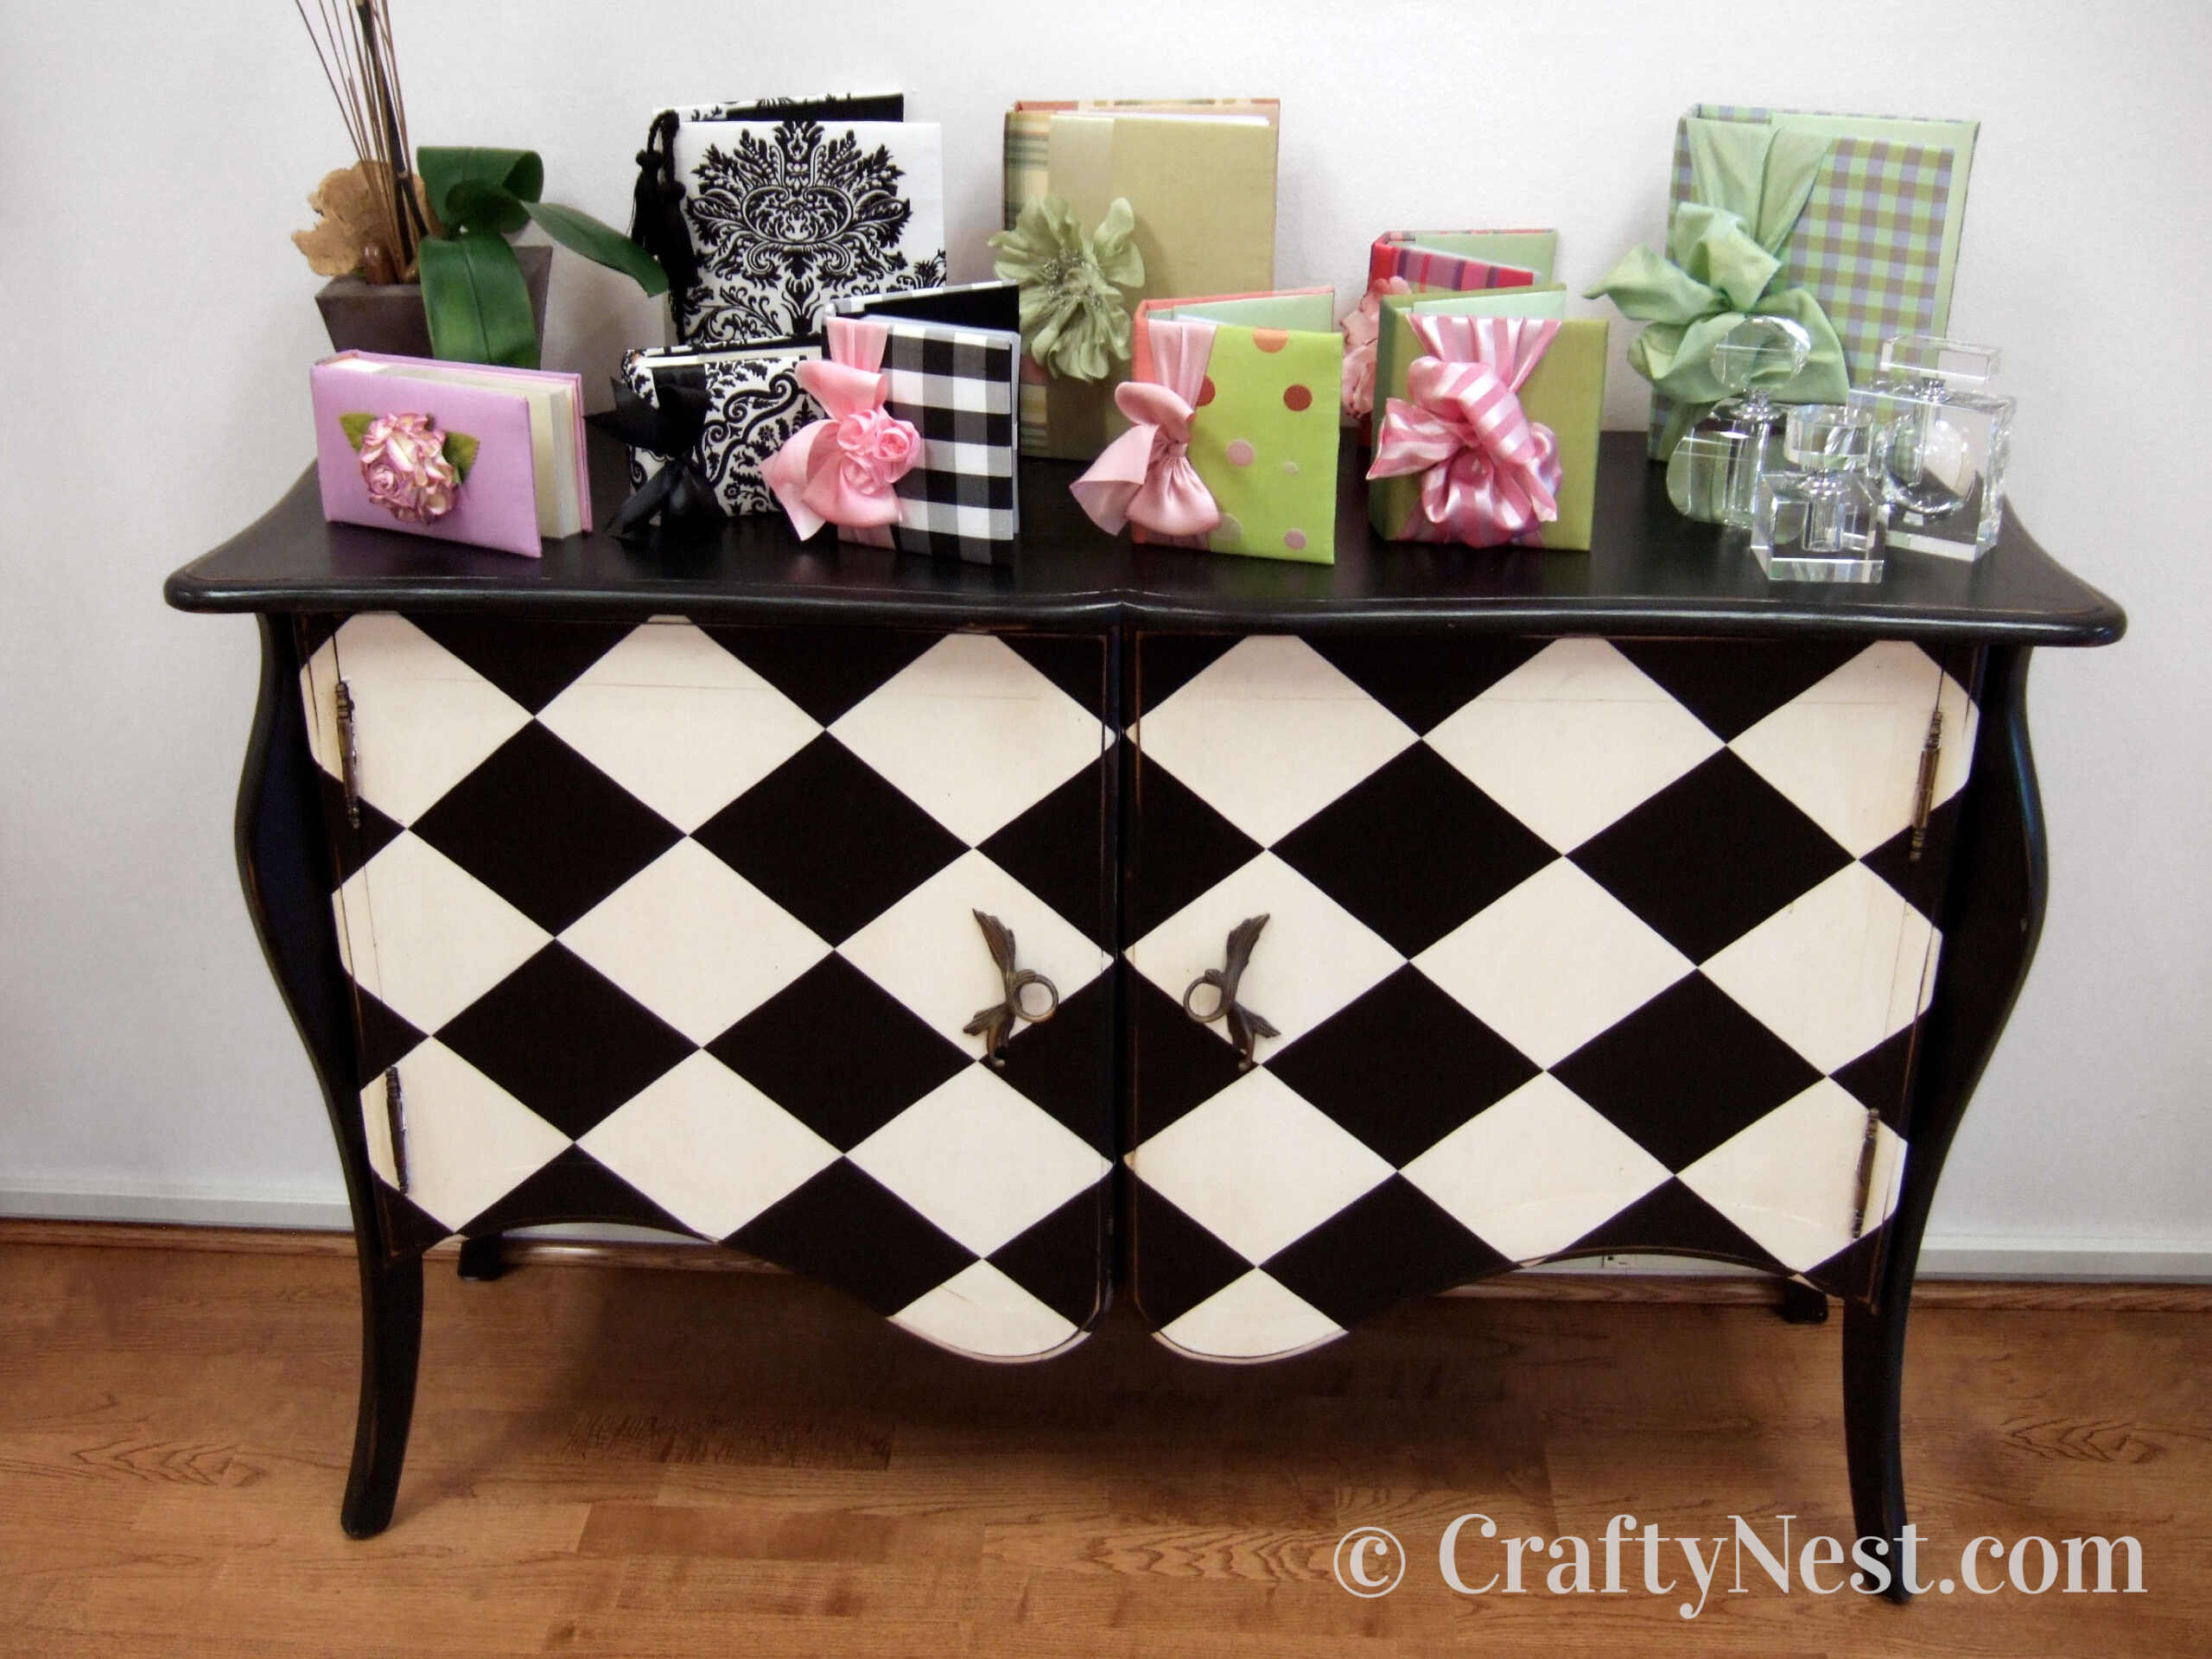 Curvy bureau with checkerboard pattern, photo